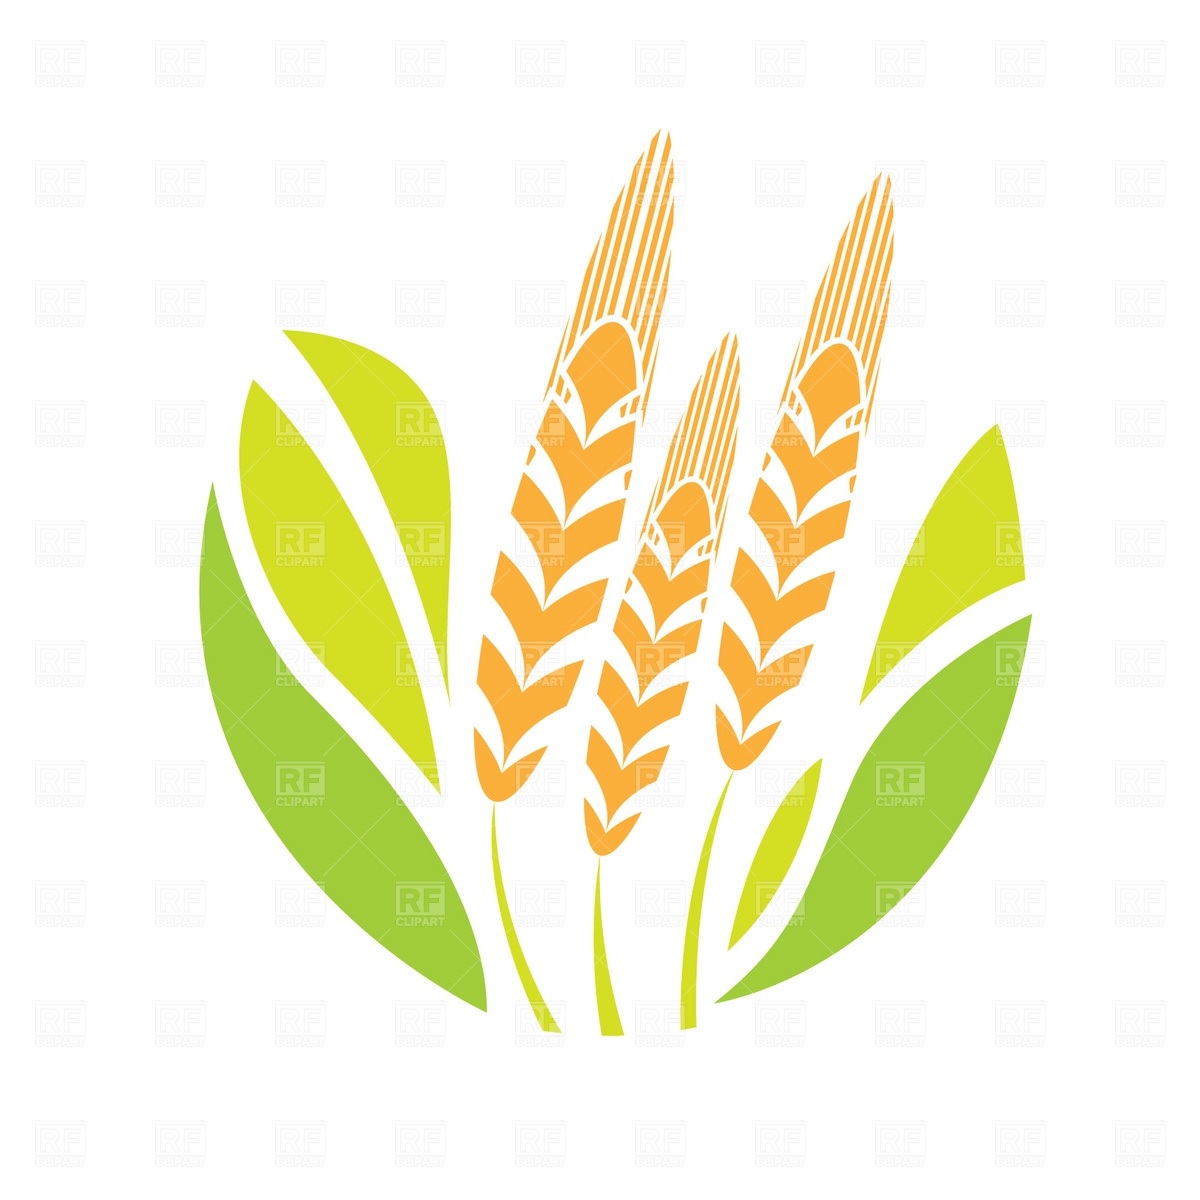 Agriculture clipart Awesome Agriculture emblem Royalty Free.